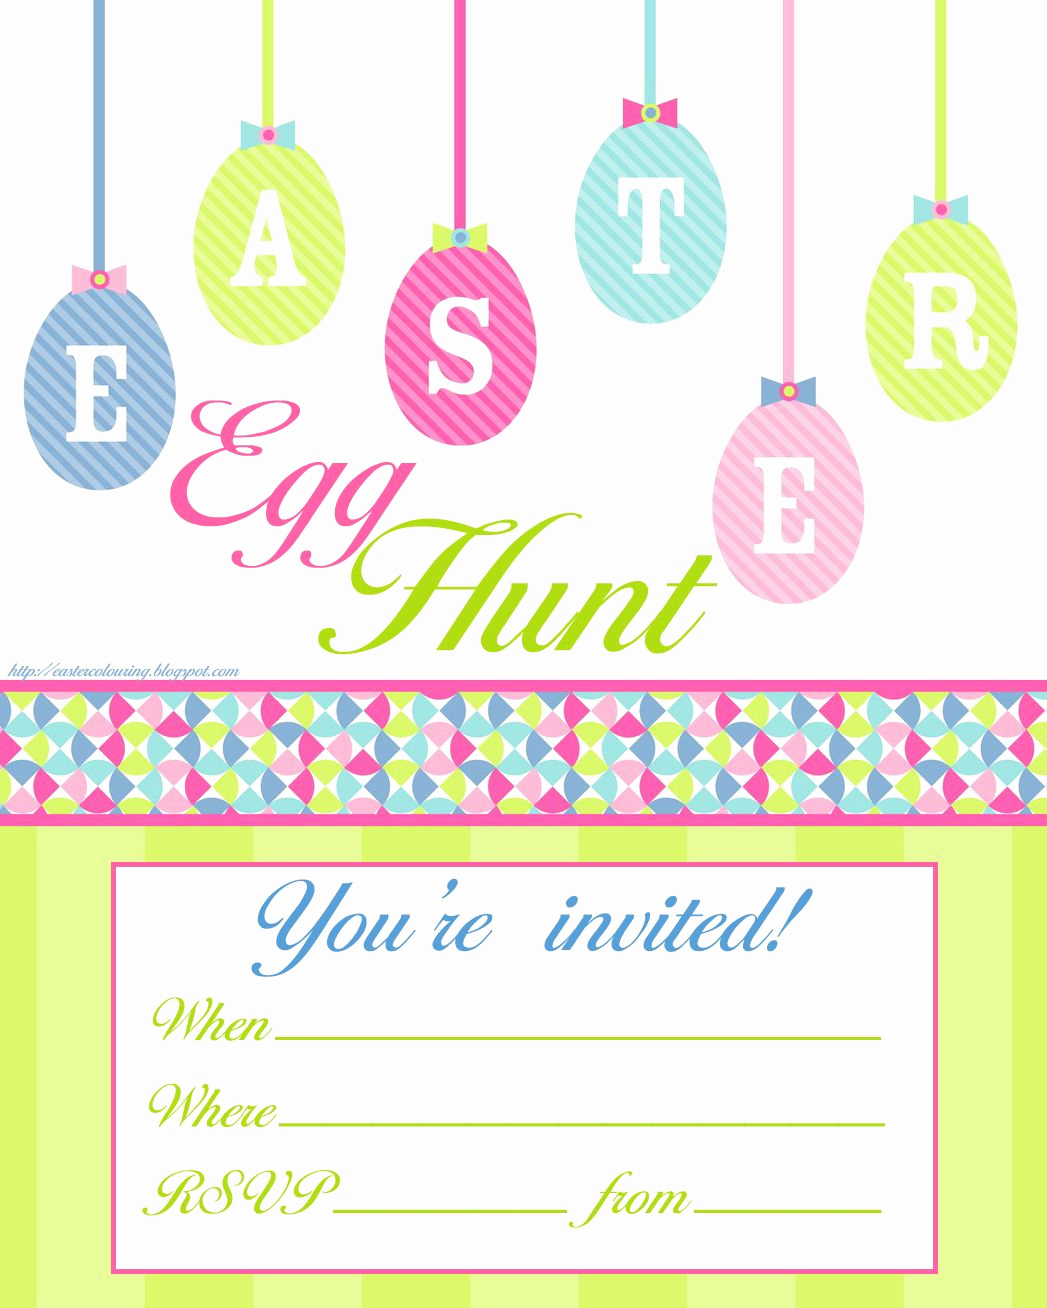 Easter Invitation Template Free Luxury Easter Egg Hunt Free Printable Invitation Print However